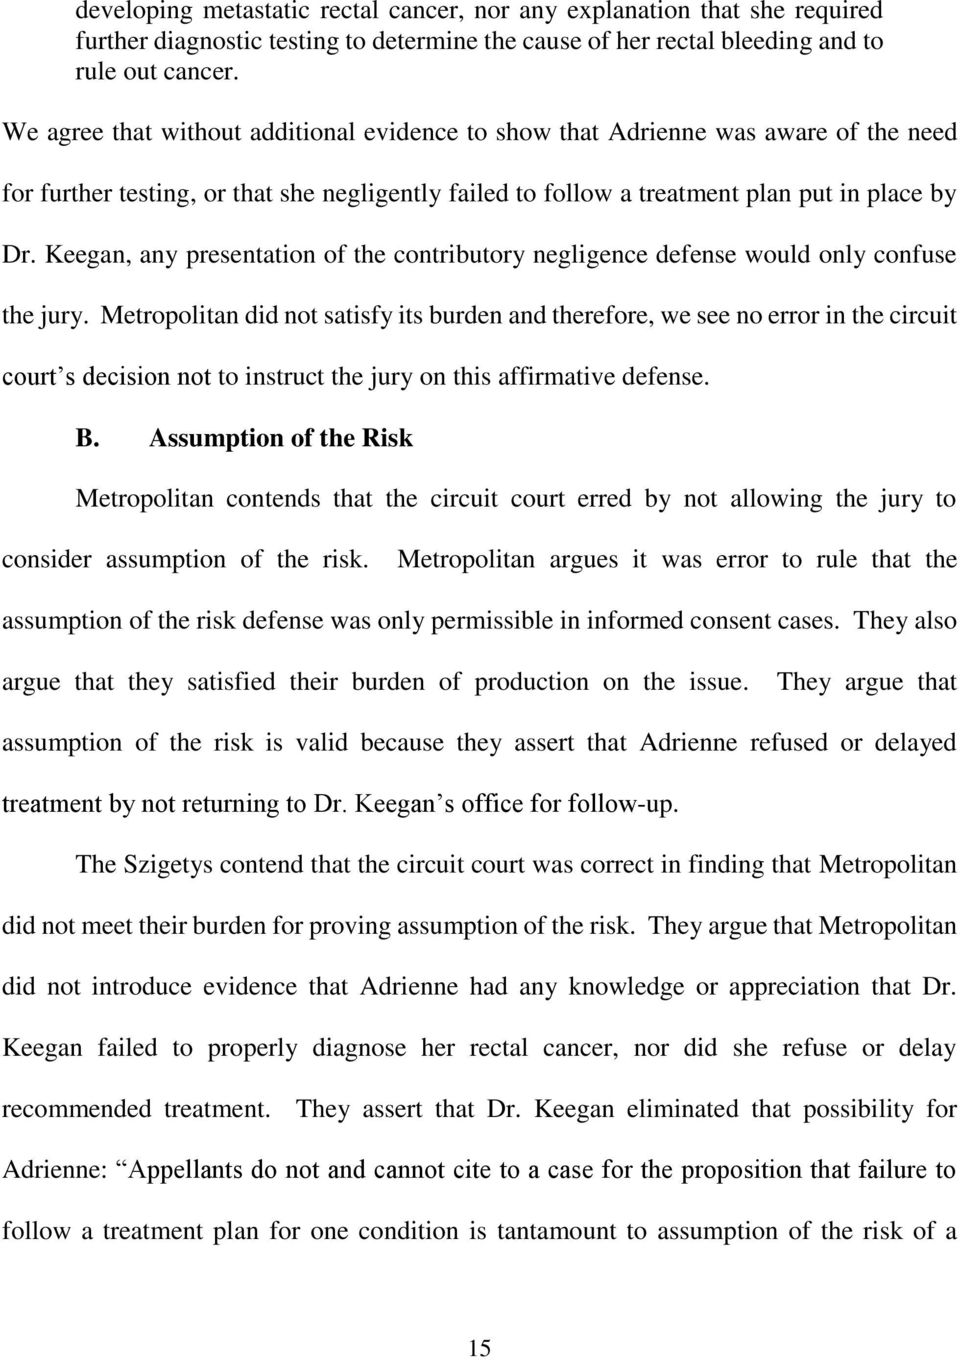 Keegan, any presentation of the contributory negligence defense would only confuse the jury.